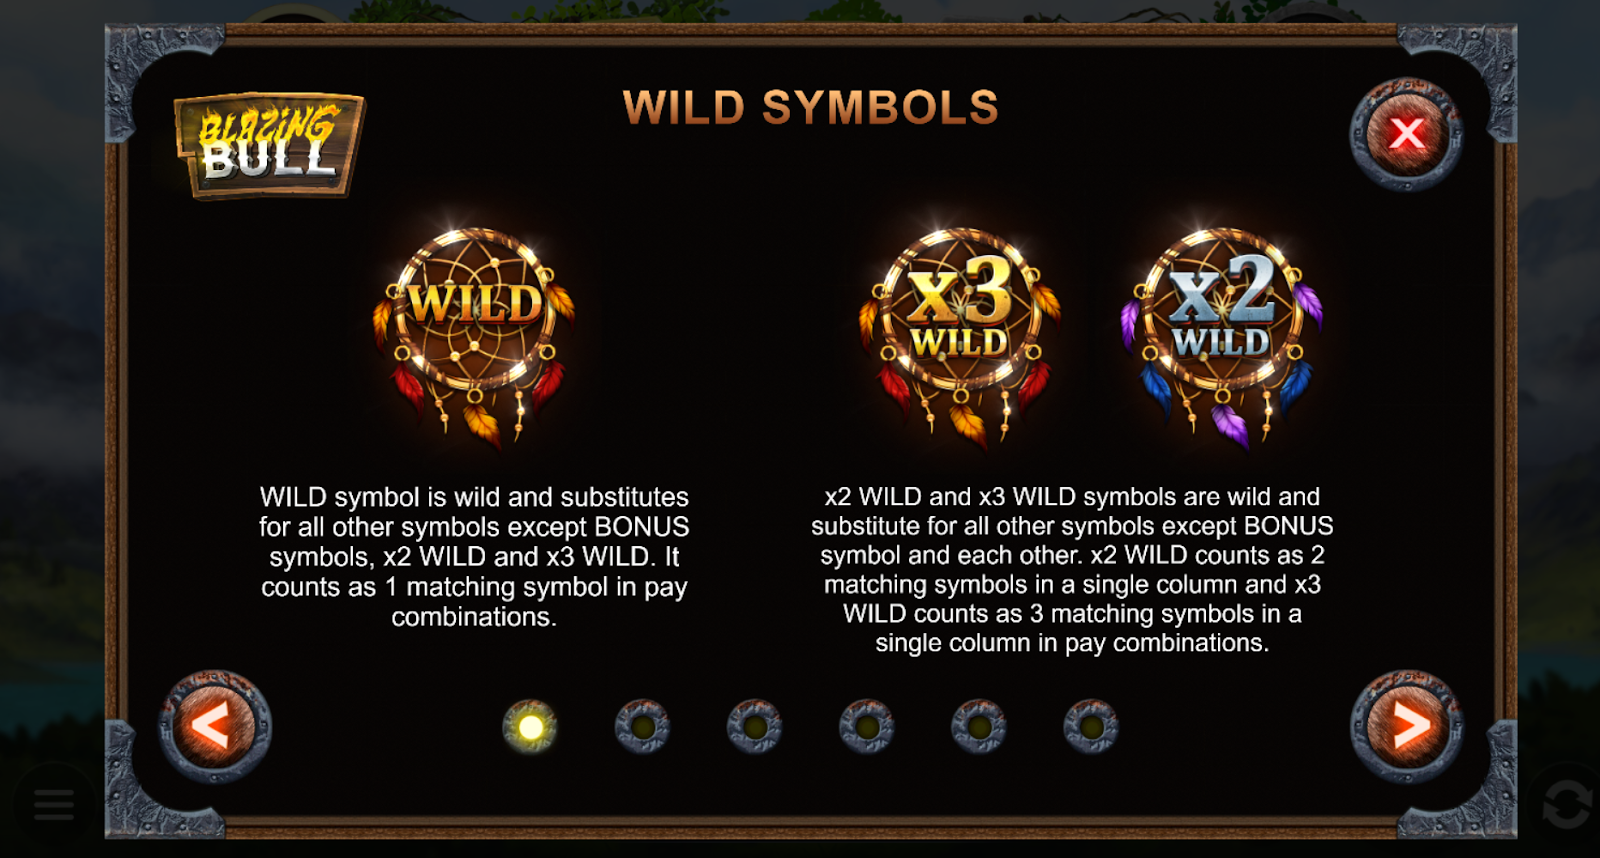 Blazing Bull is a video slot game that has some wild symbols